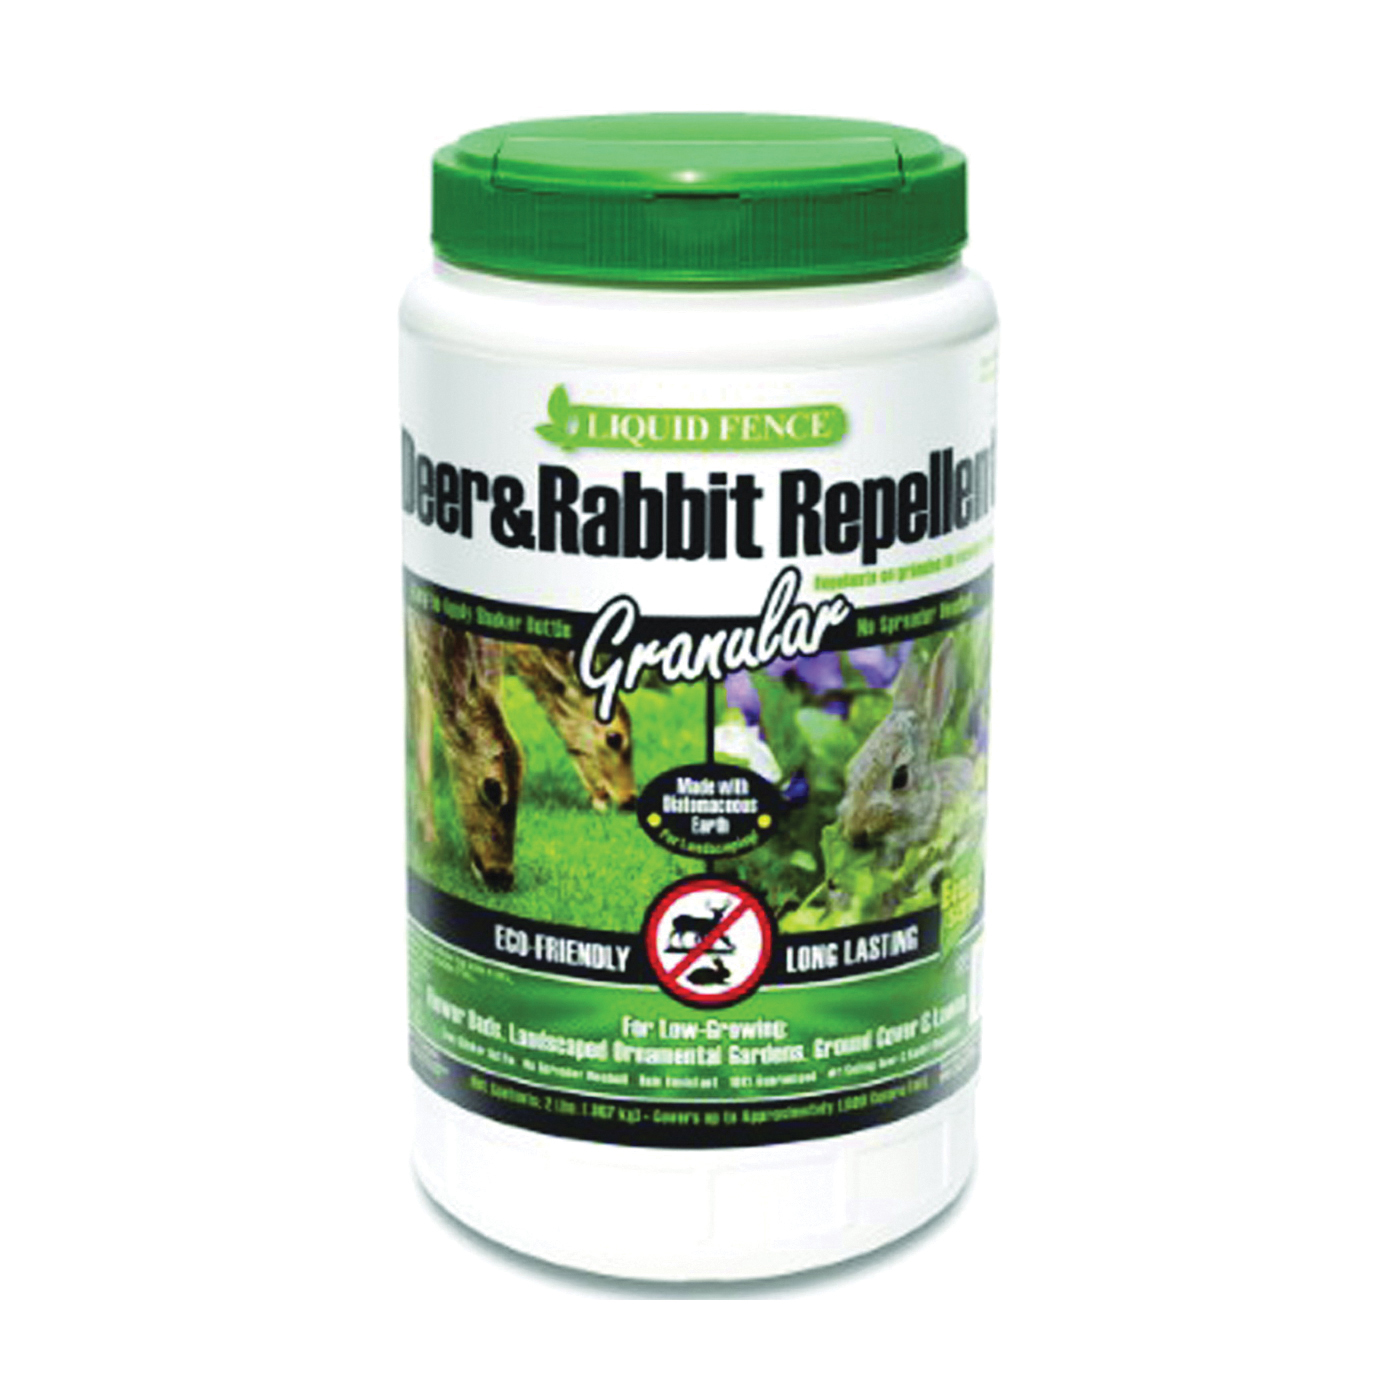 Picture of LIQUID FENCE HG-70266 Deer and Rabbit Repellent